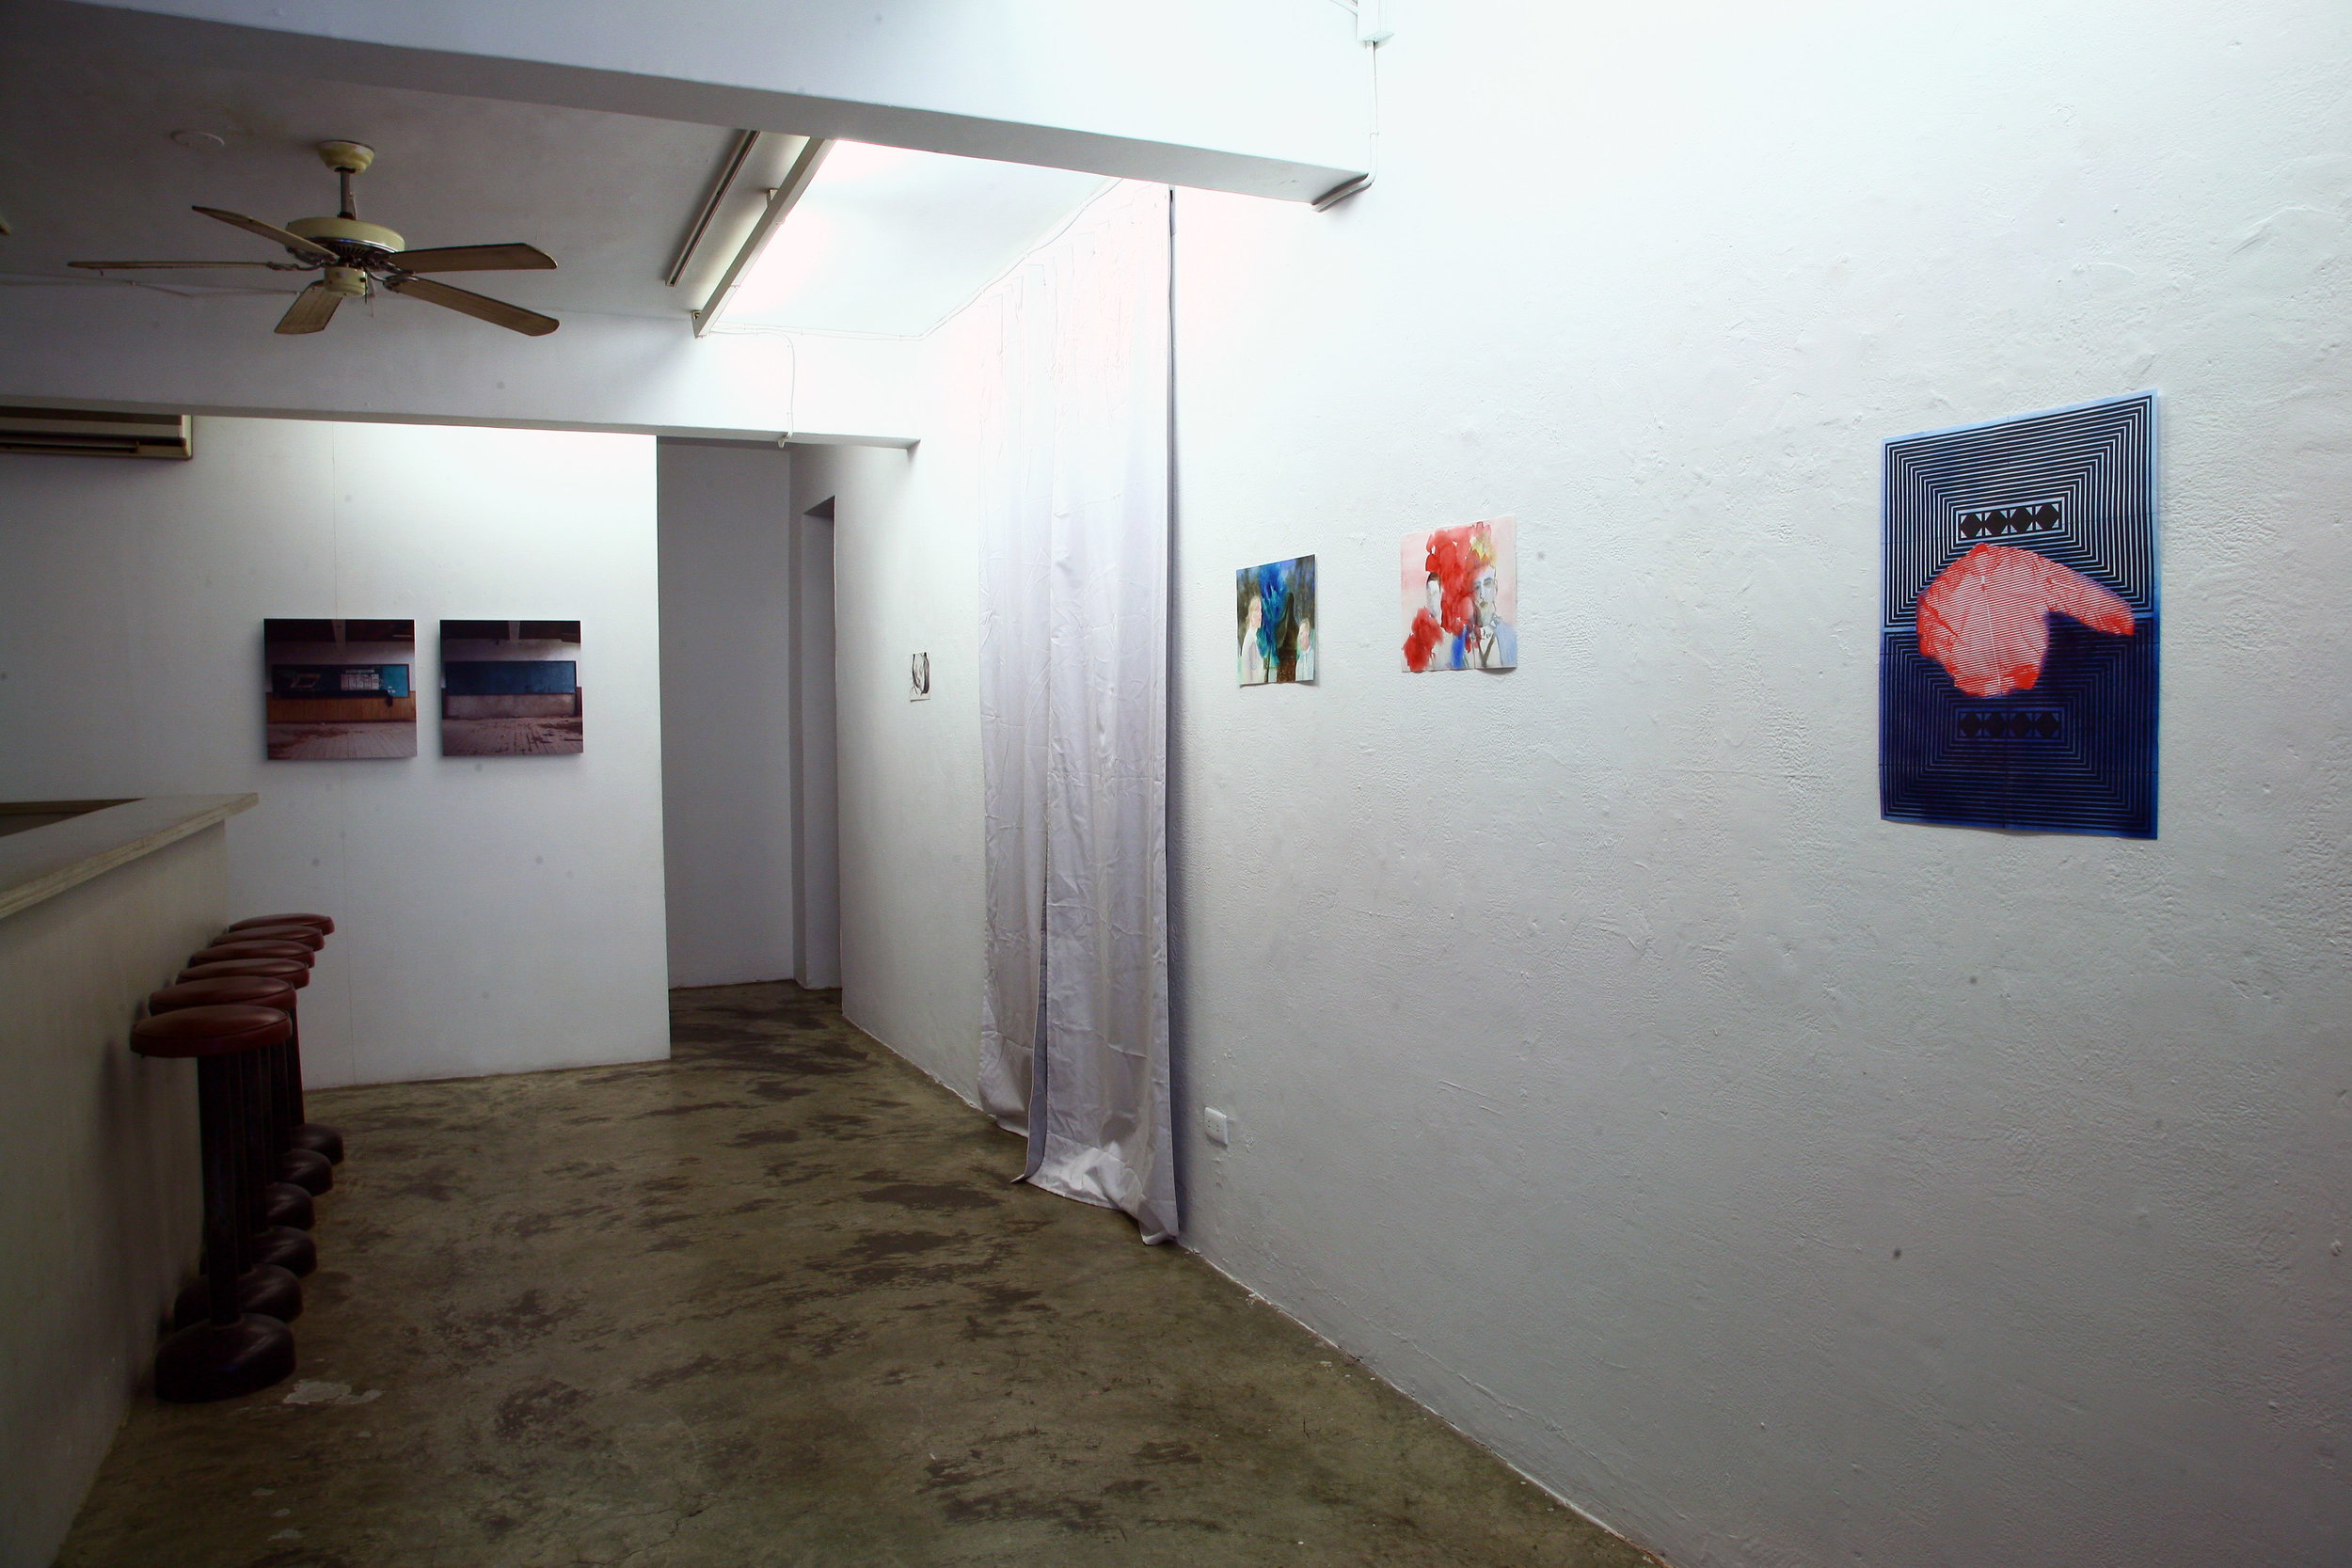 Installation shot by artist Wu Shang Lin (left), Claire Hooper (middle) and Mark Aerial Waller (Right)